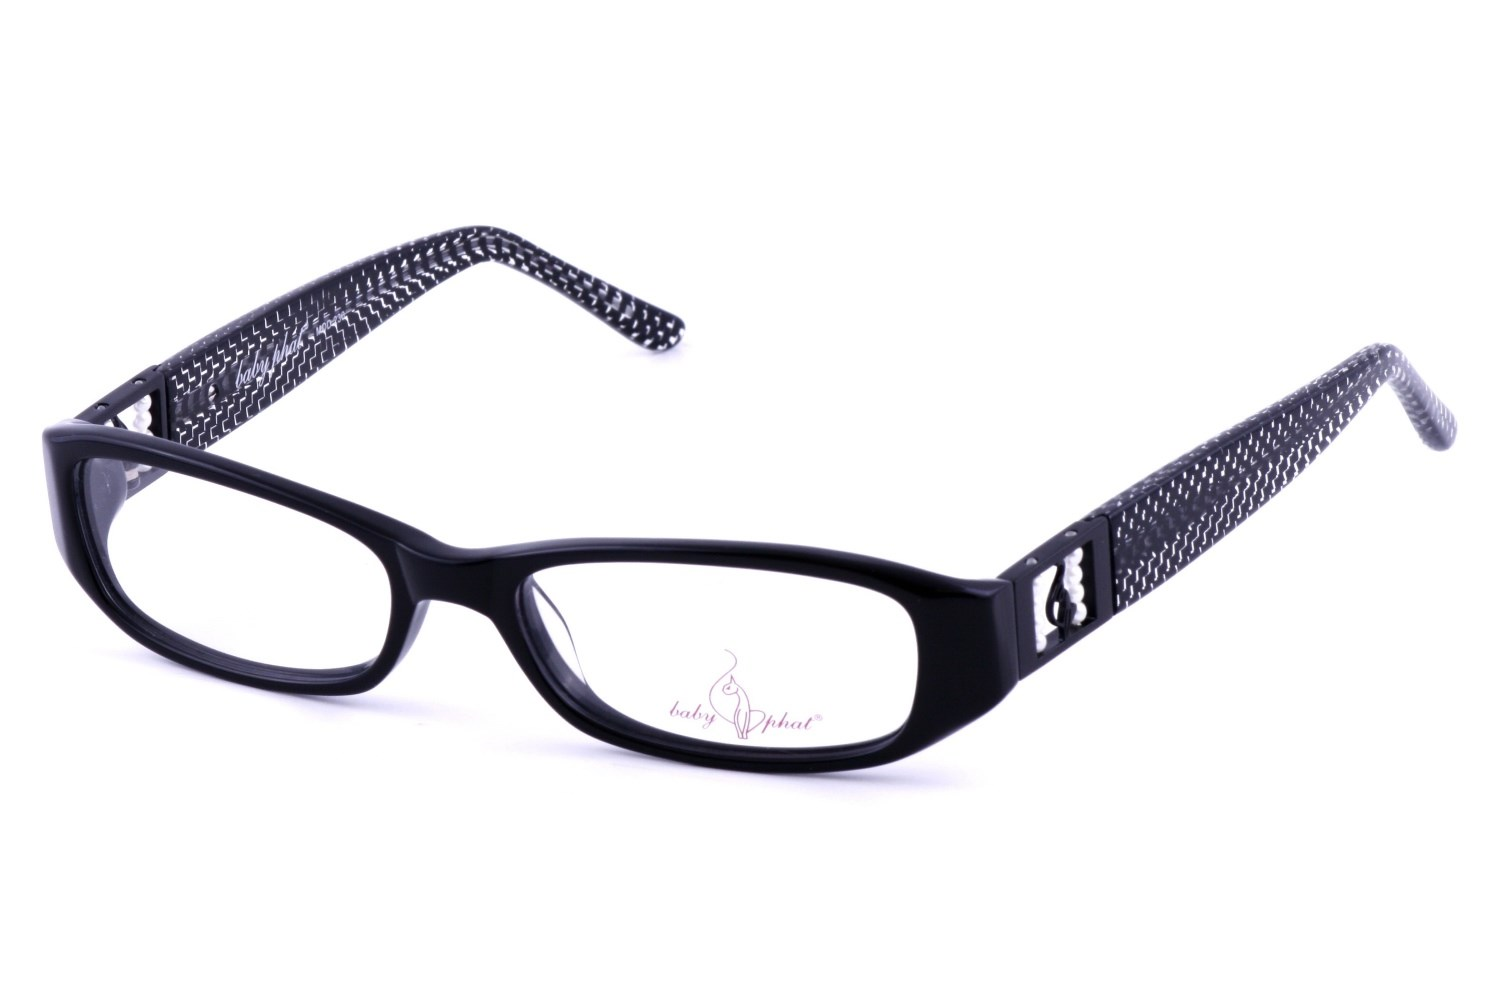 72f759d3fa Eyeglasses - Glasses Eyewear glasses and contact lenses superstore